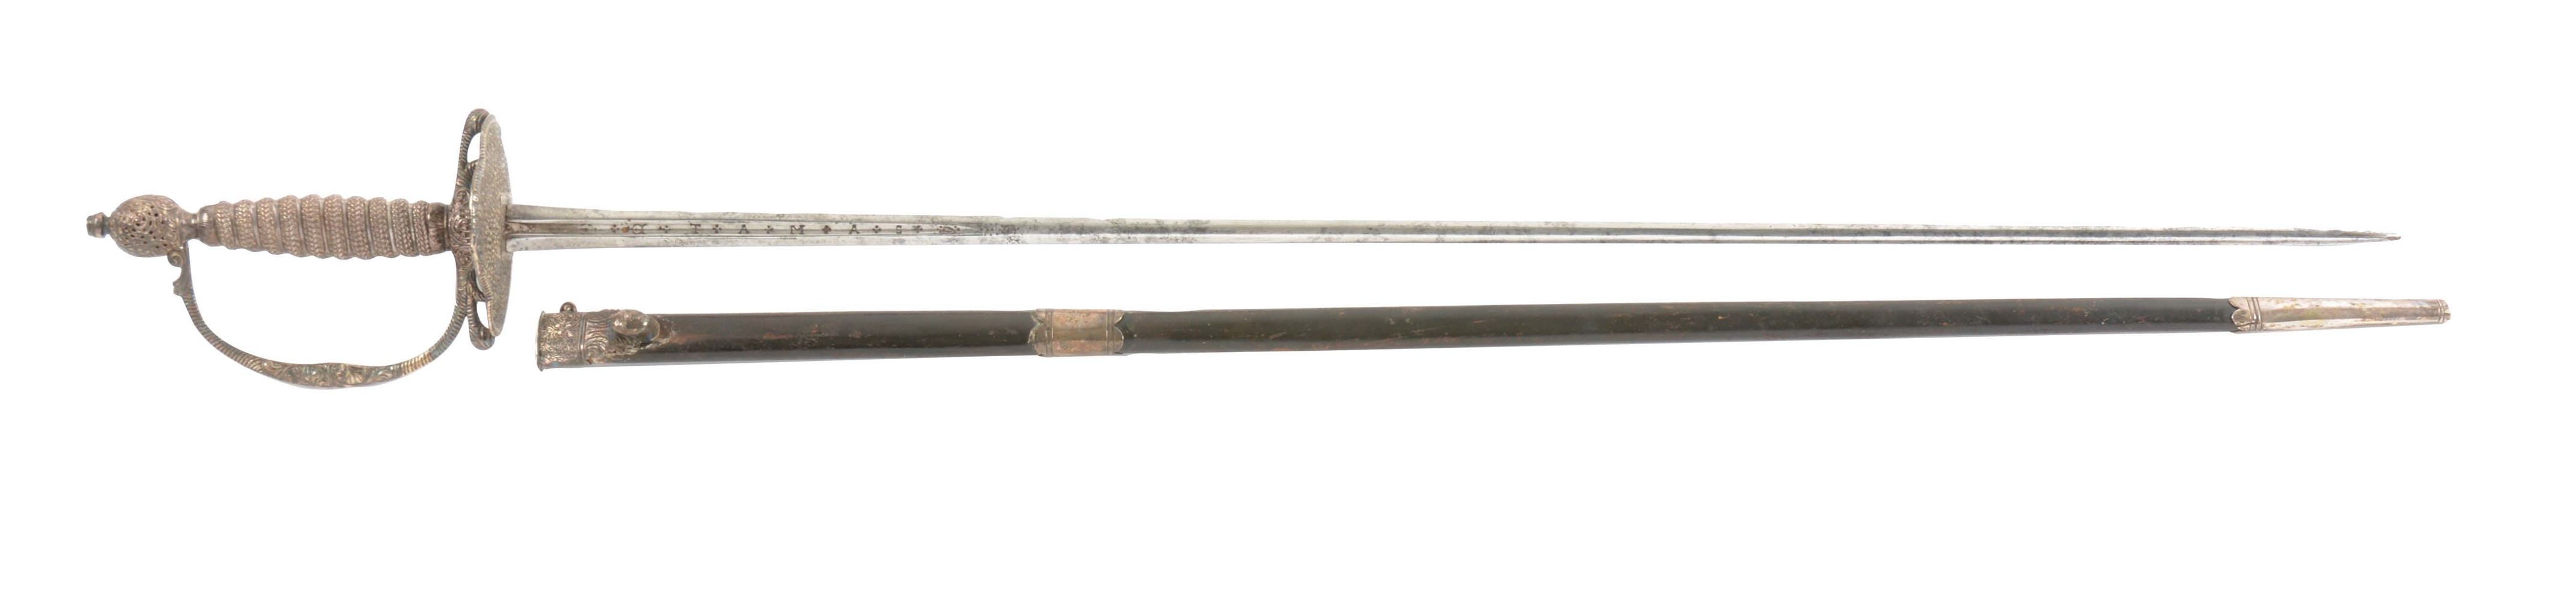 EXQUISITE ENGLISH PIERCED SILVER-HILTED SMALL SWORD AND SCABBARD BY BLAND, HALLMARKED FOR 1767.